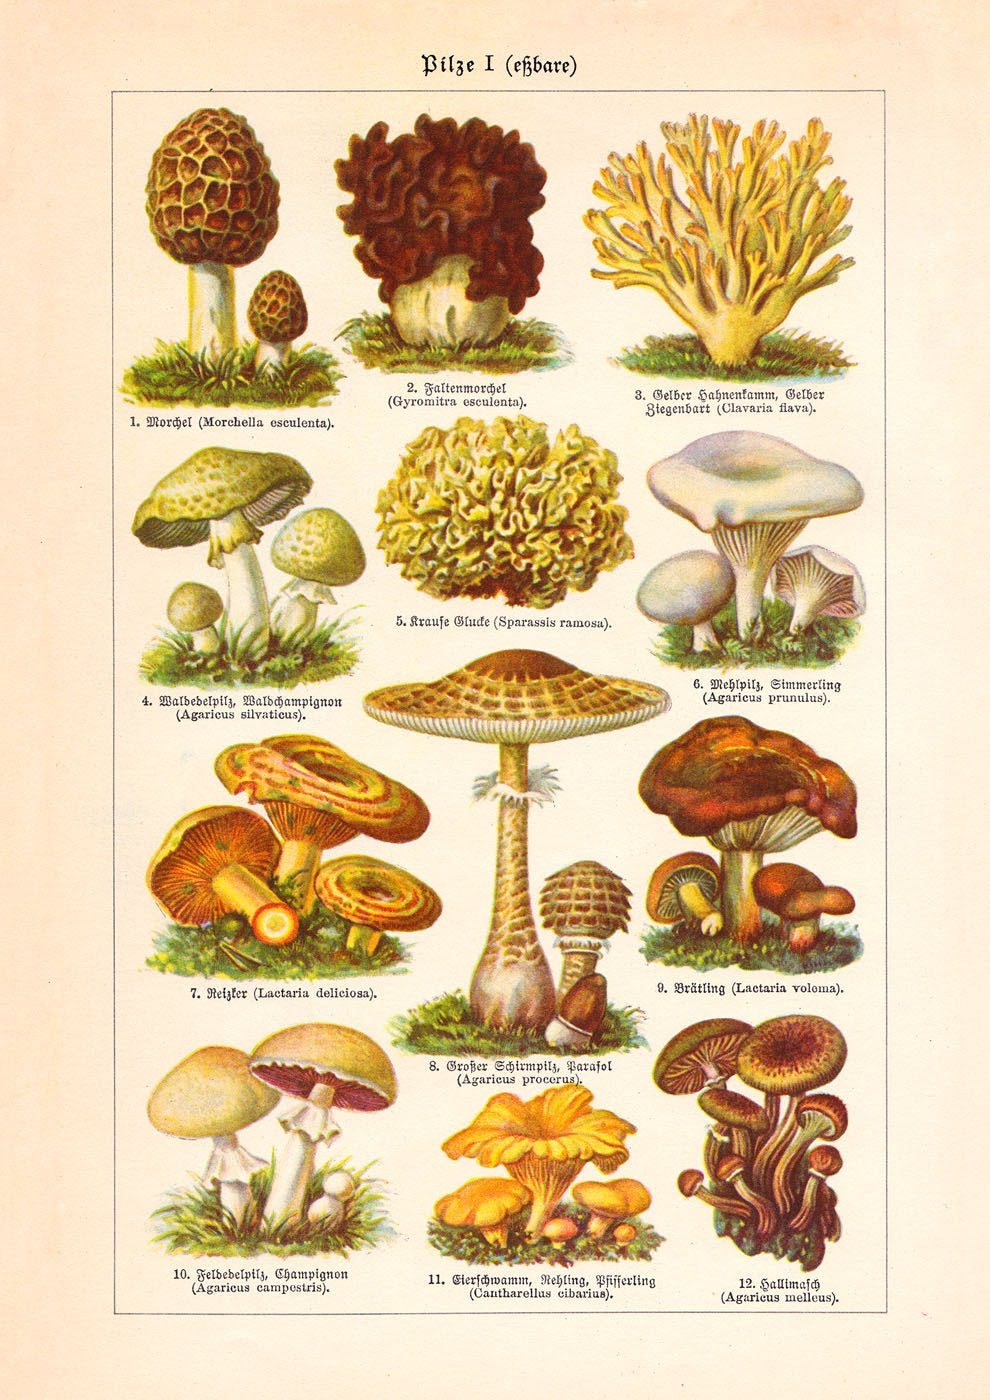 Mushrooms I (Pilze I)